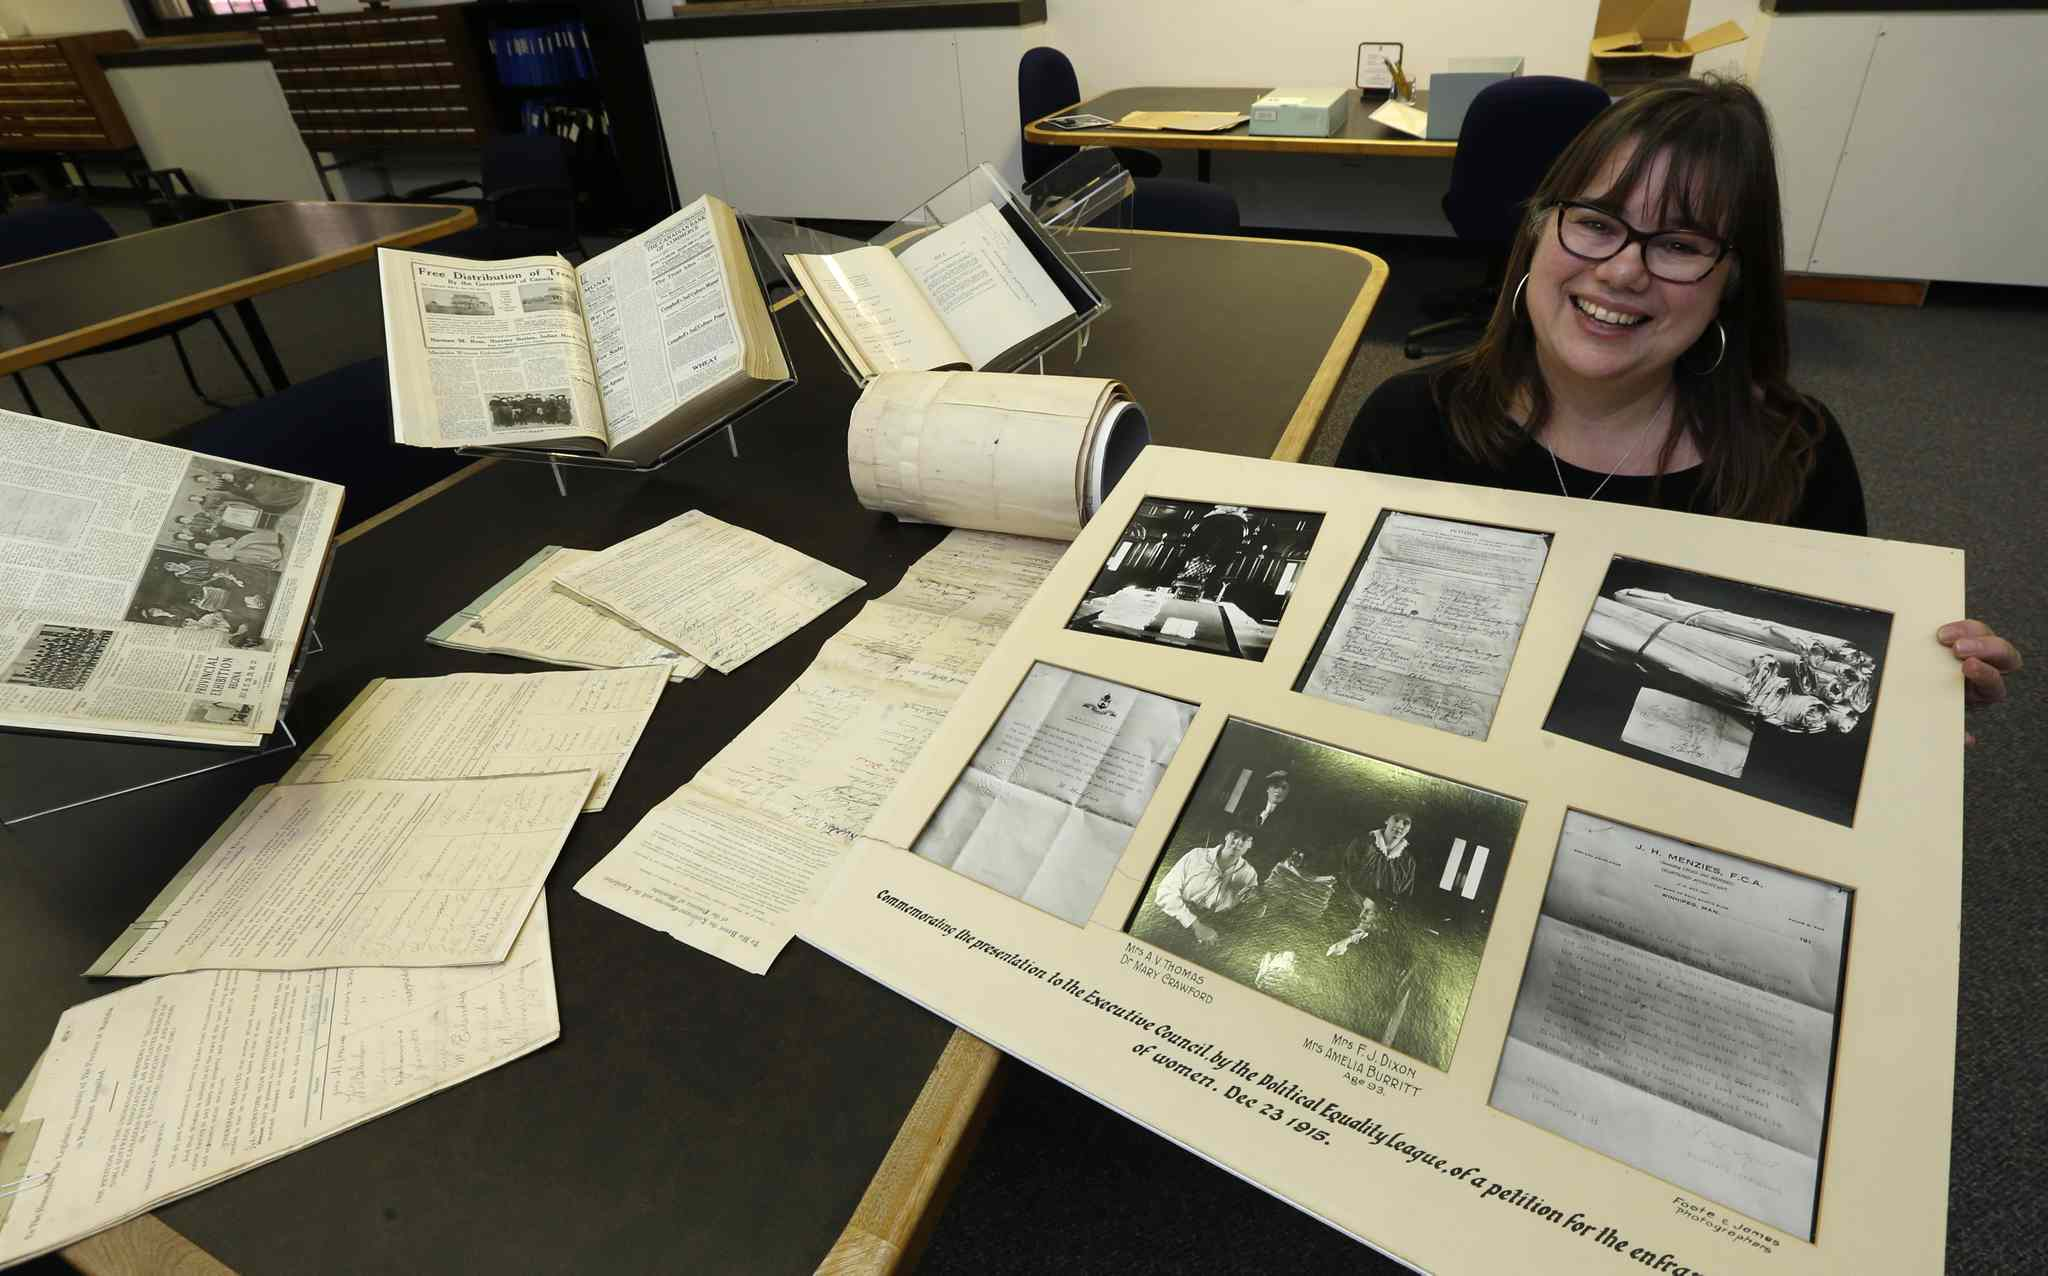 Kathleen Epp, senior archivist at the Archives of Manitoba, with some of the items that will be on display at the suffrage open house.